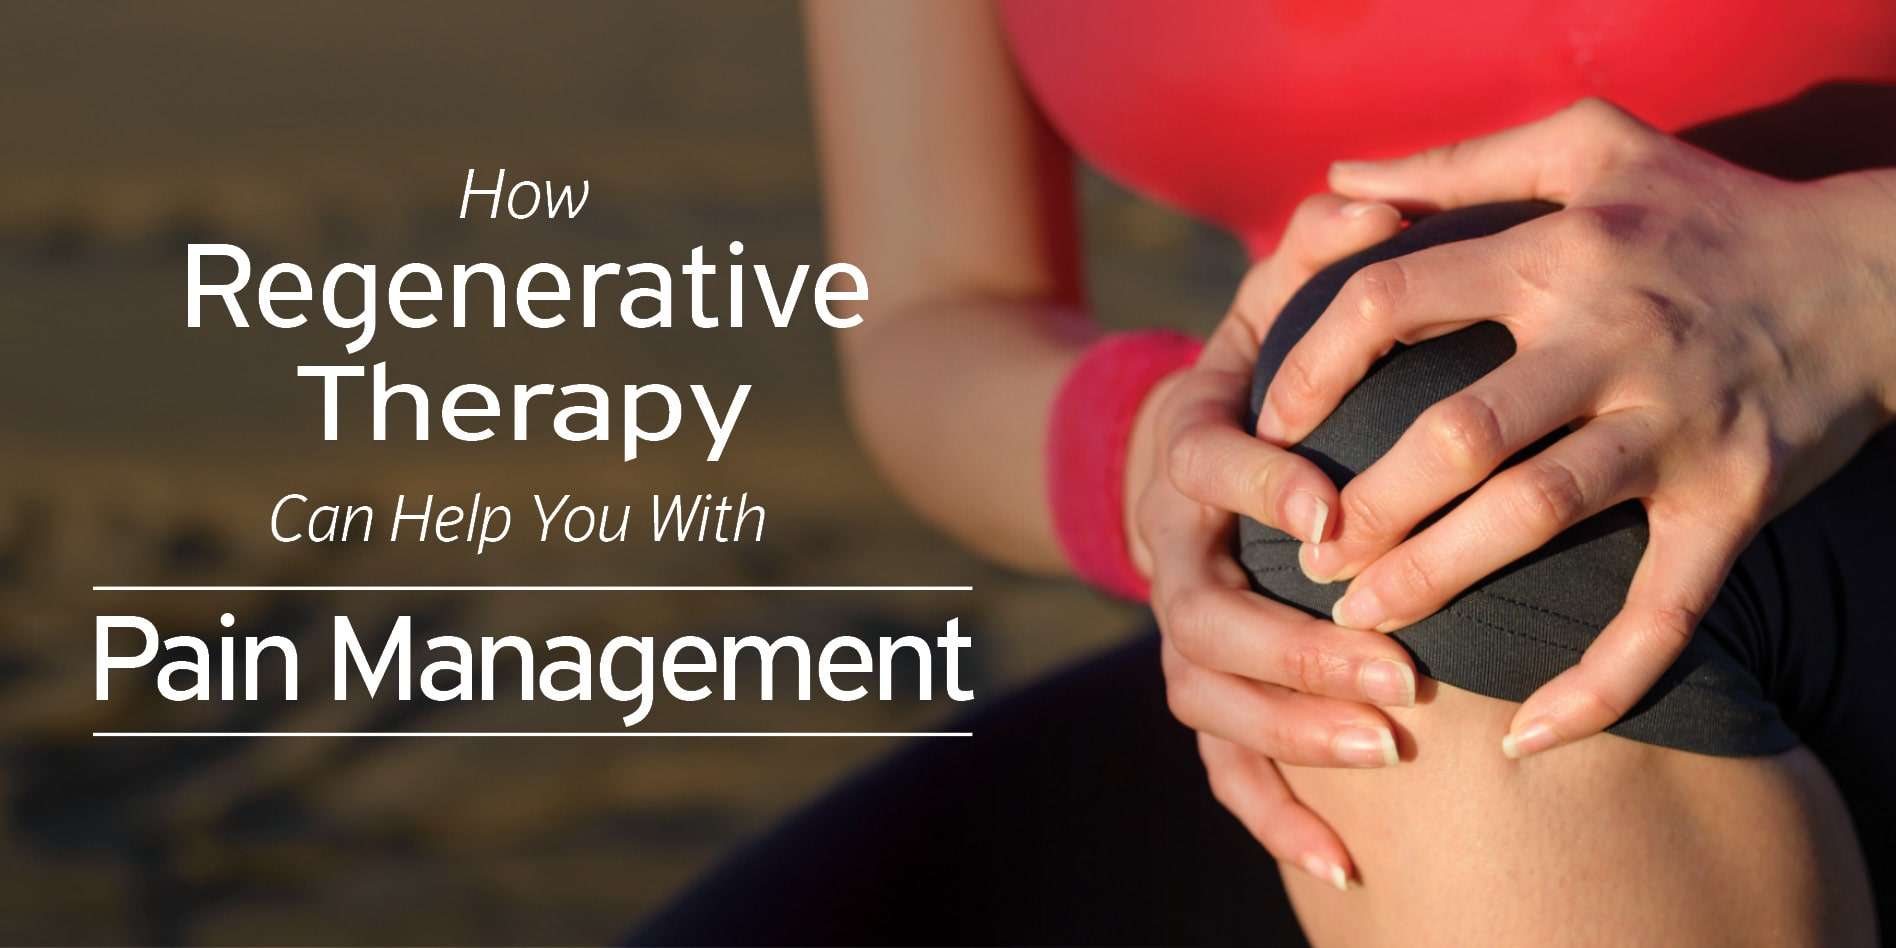 How Regenerative Therapy Can Help You With Pain Management